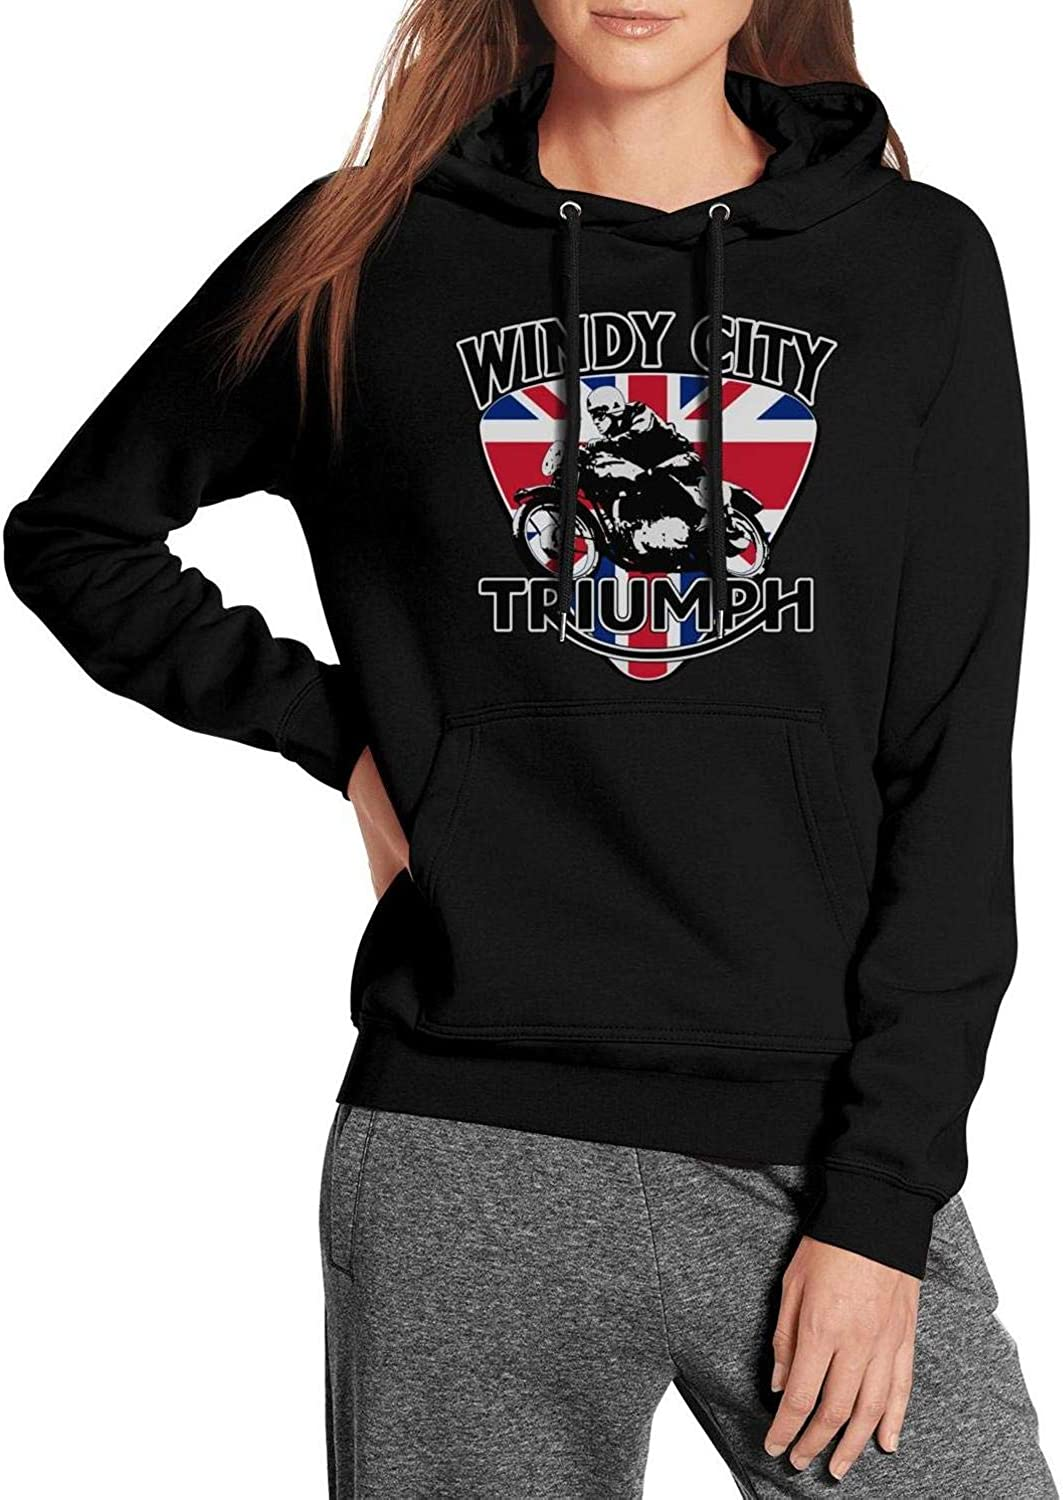 Windy City Triumph Logo Sweatshirts for Womens Active Pullover Loose Pullover Hoodie